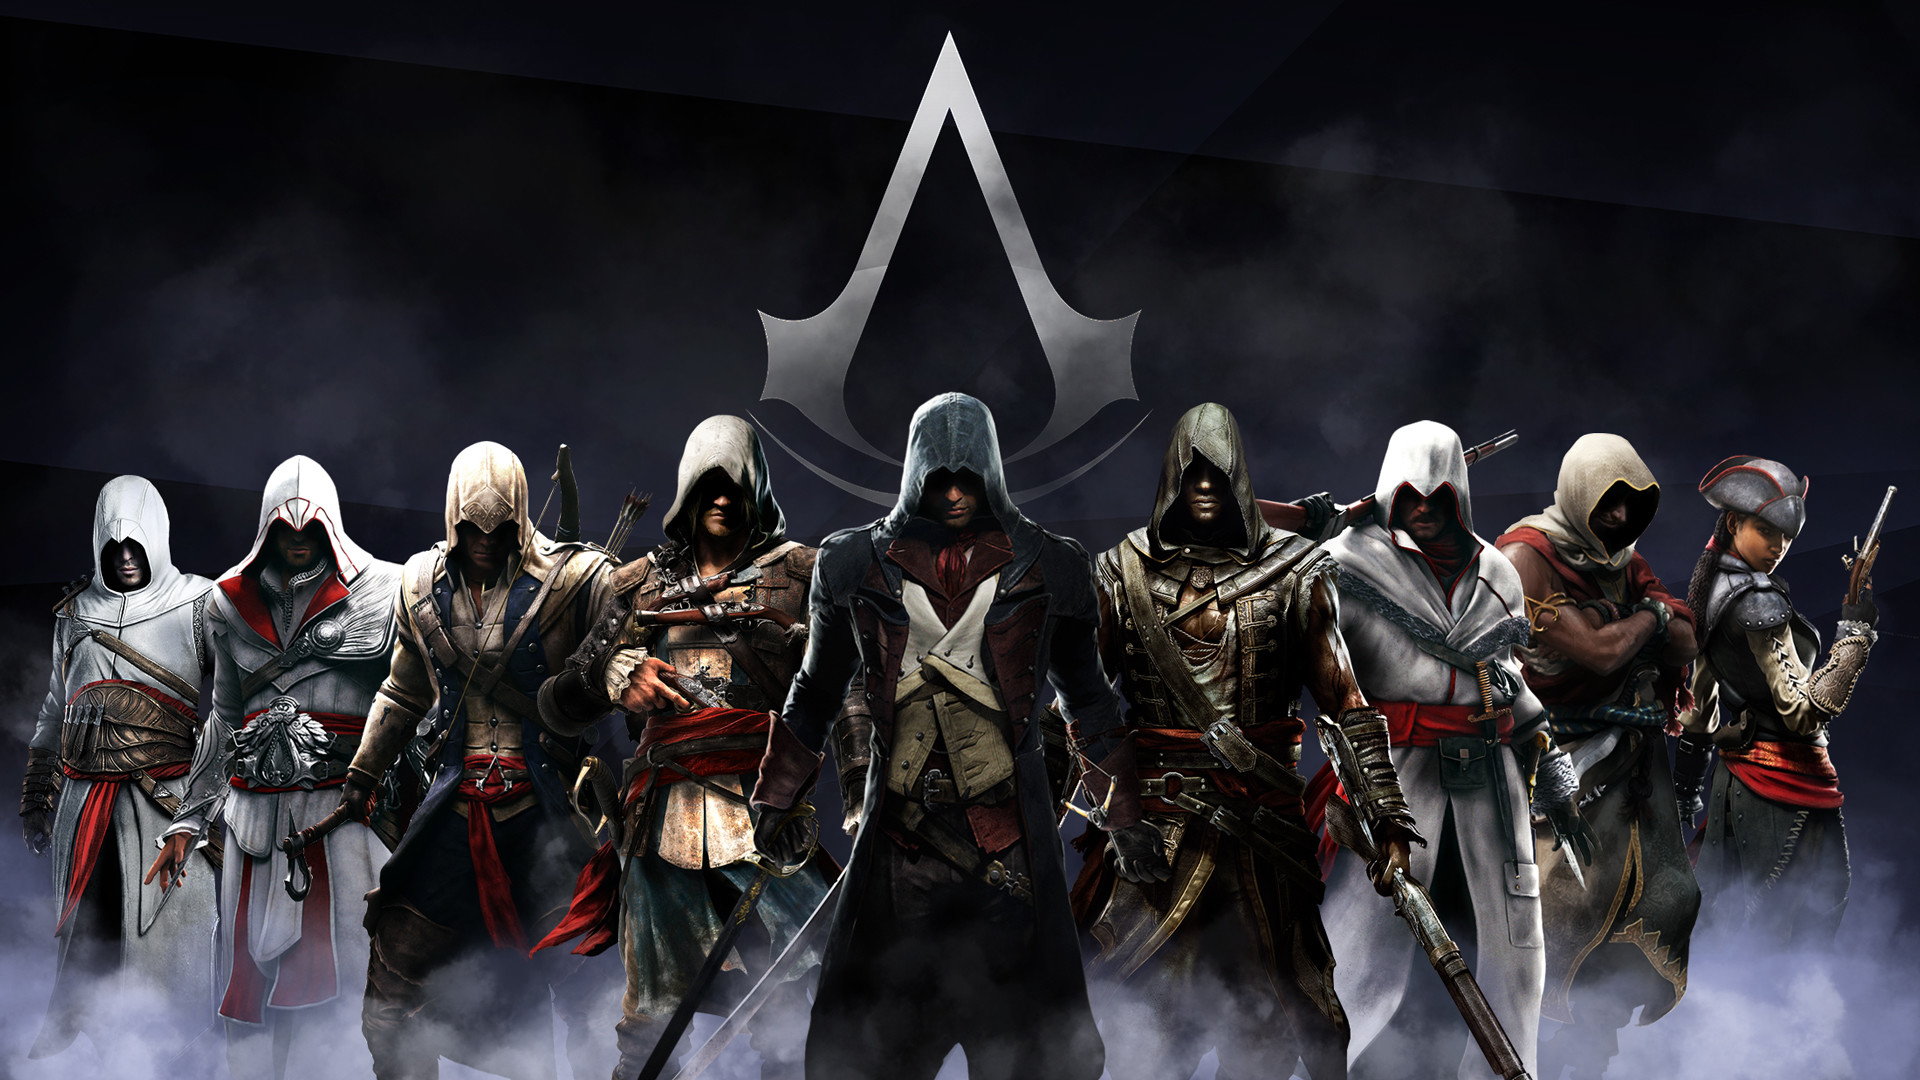 1920x1080 Ultra HD K Assassins creed Wallpapers HD Desktop Backgrounds